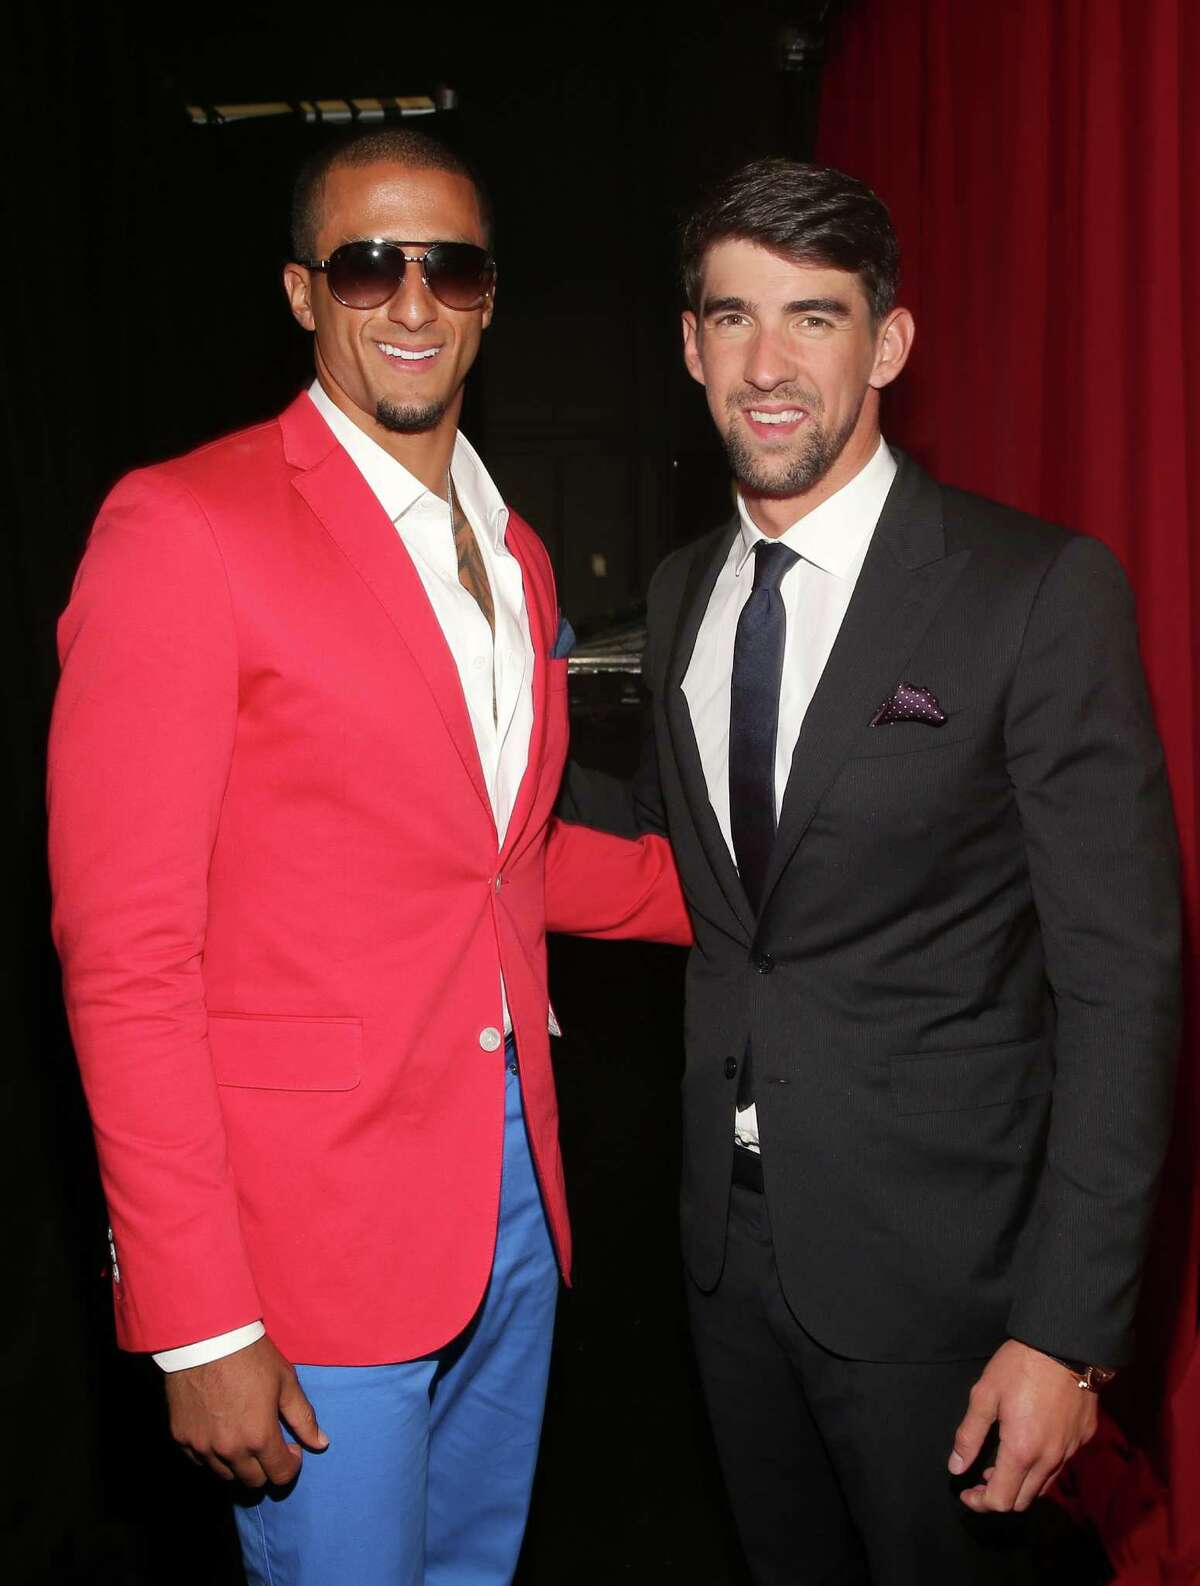 Quarterback Colin Kaepernick and Olympic swimmer Michael Phelps attend The 2013 ESPY Awards at Nokia Theatre L.A. Live on July 17, 2013 in Los Angeles, California.